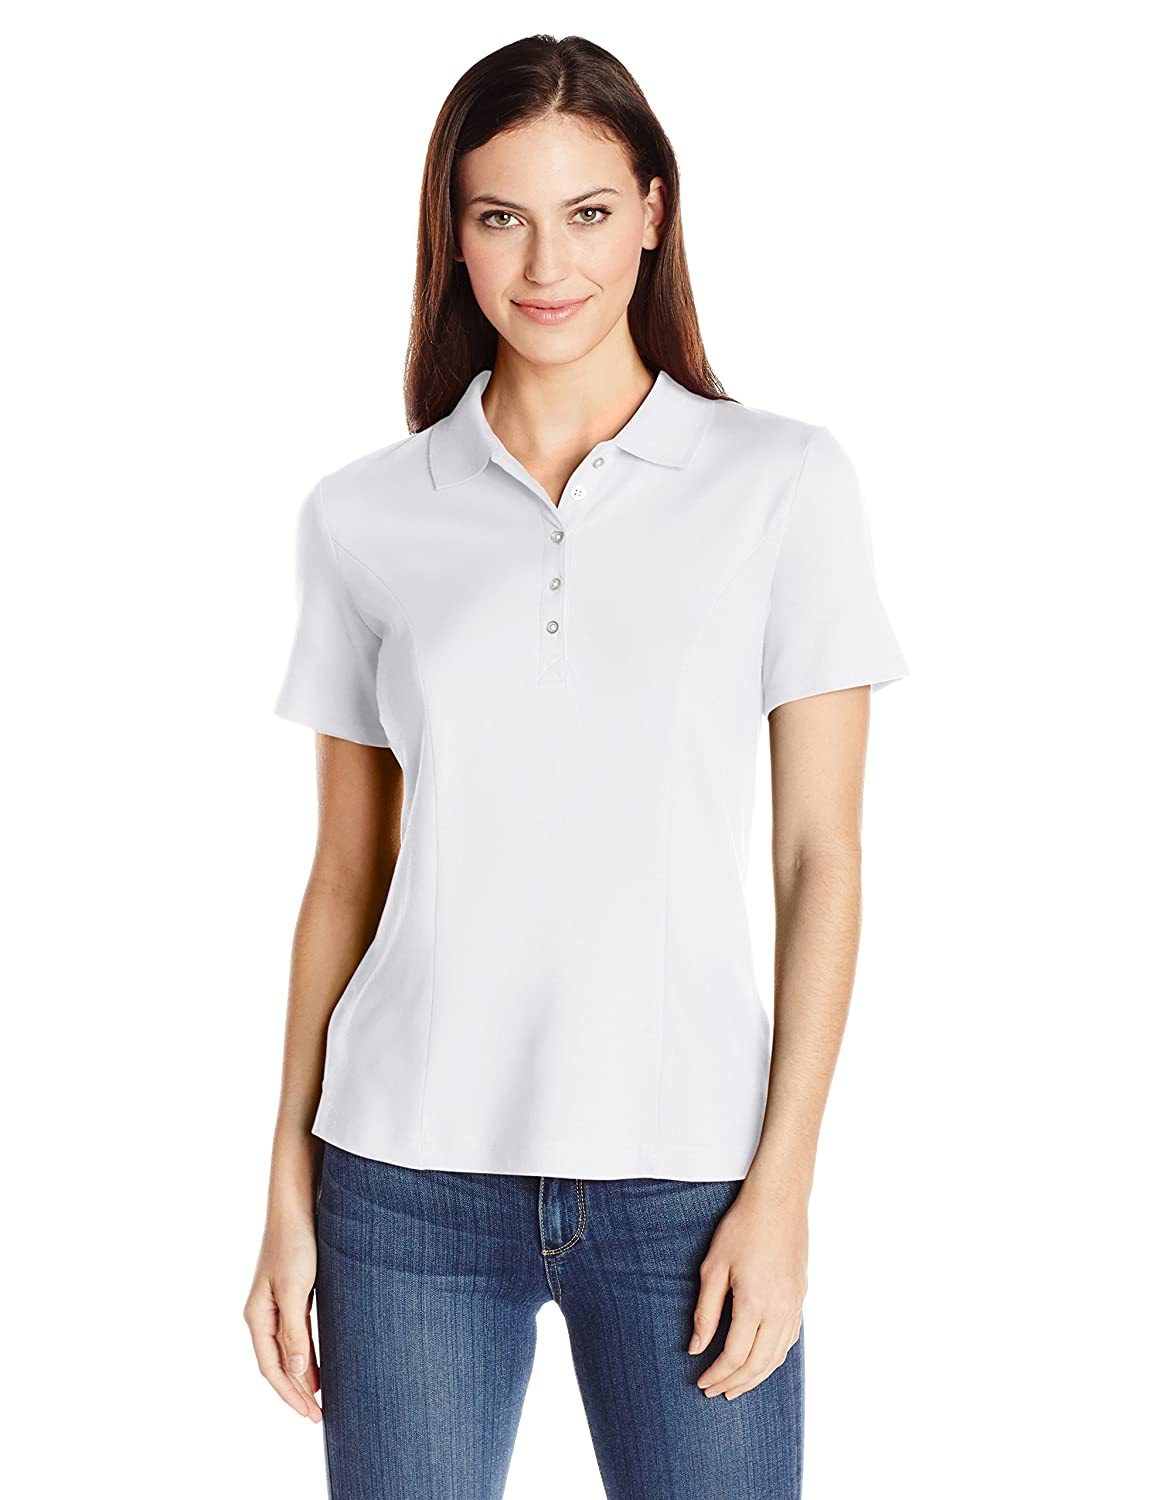 Riders by Lee Indigo Women's Short-Sleeve Polo Shirt ZFMK2